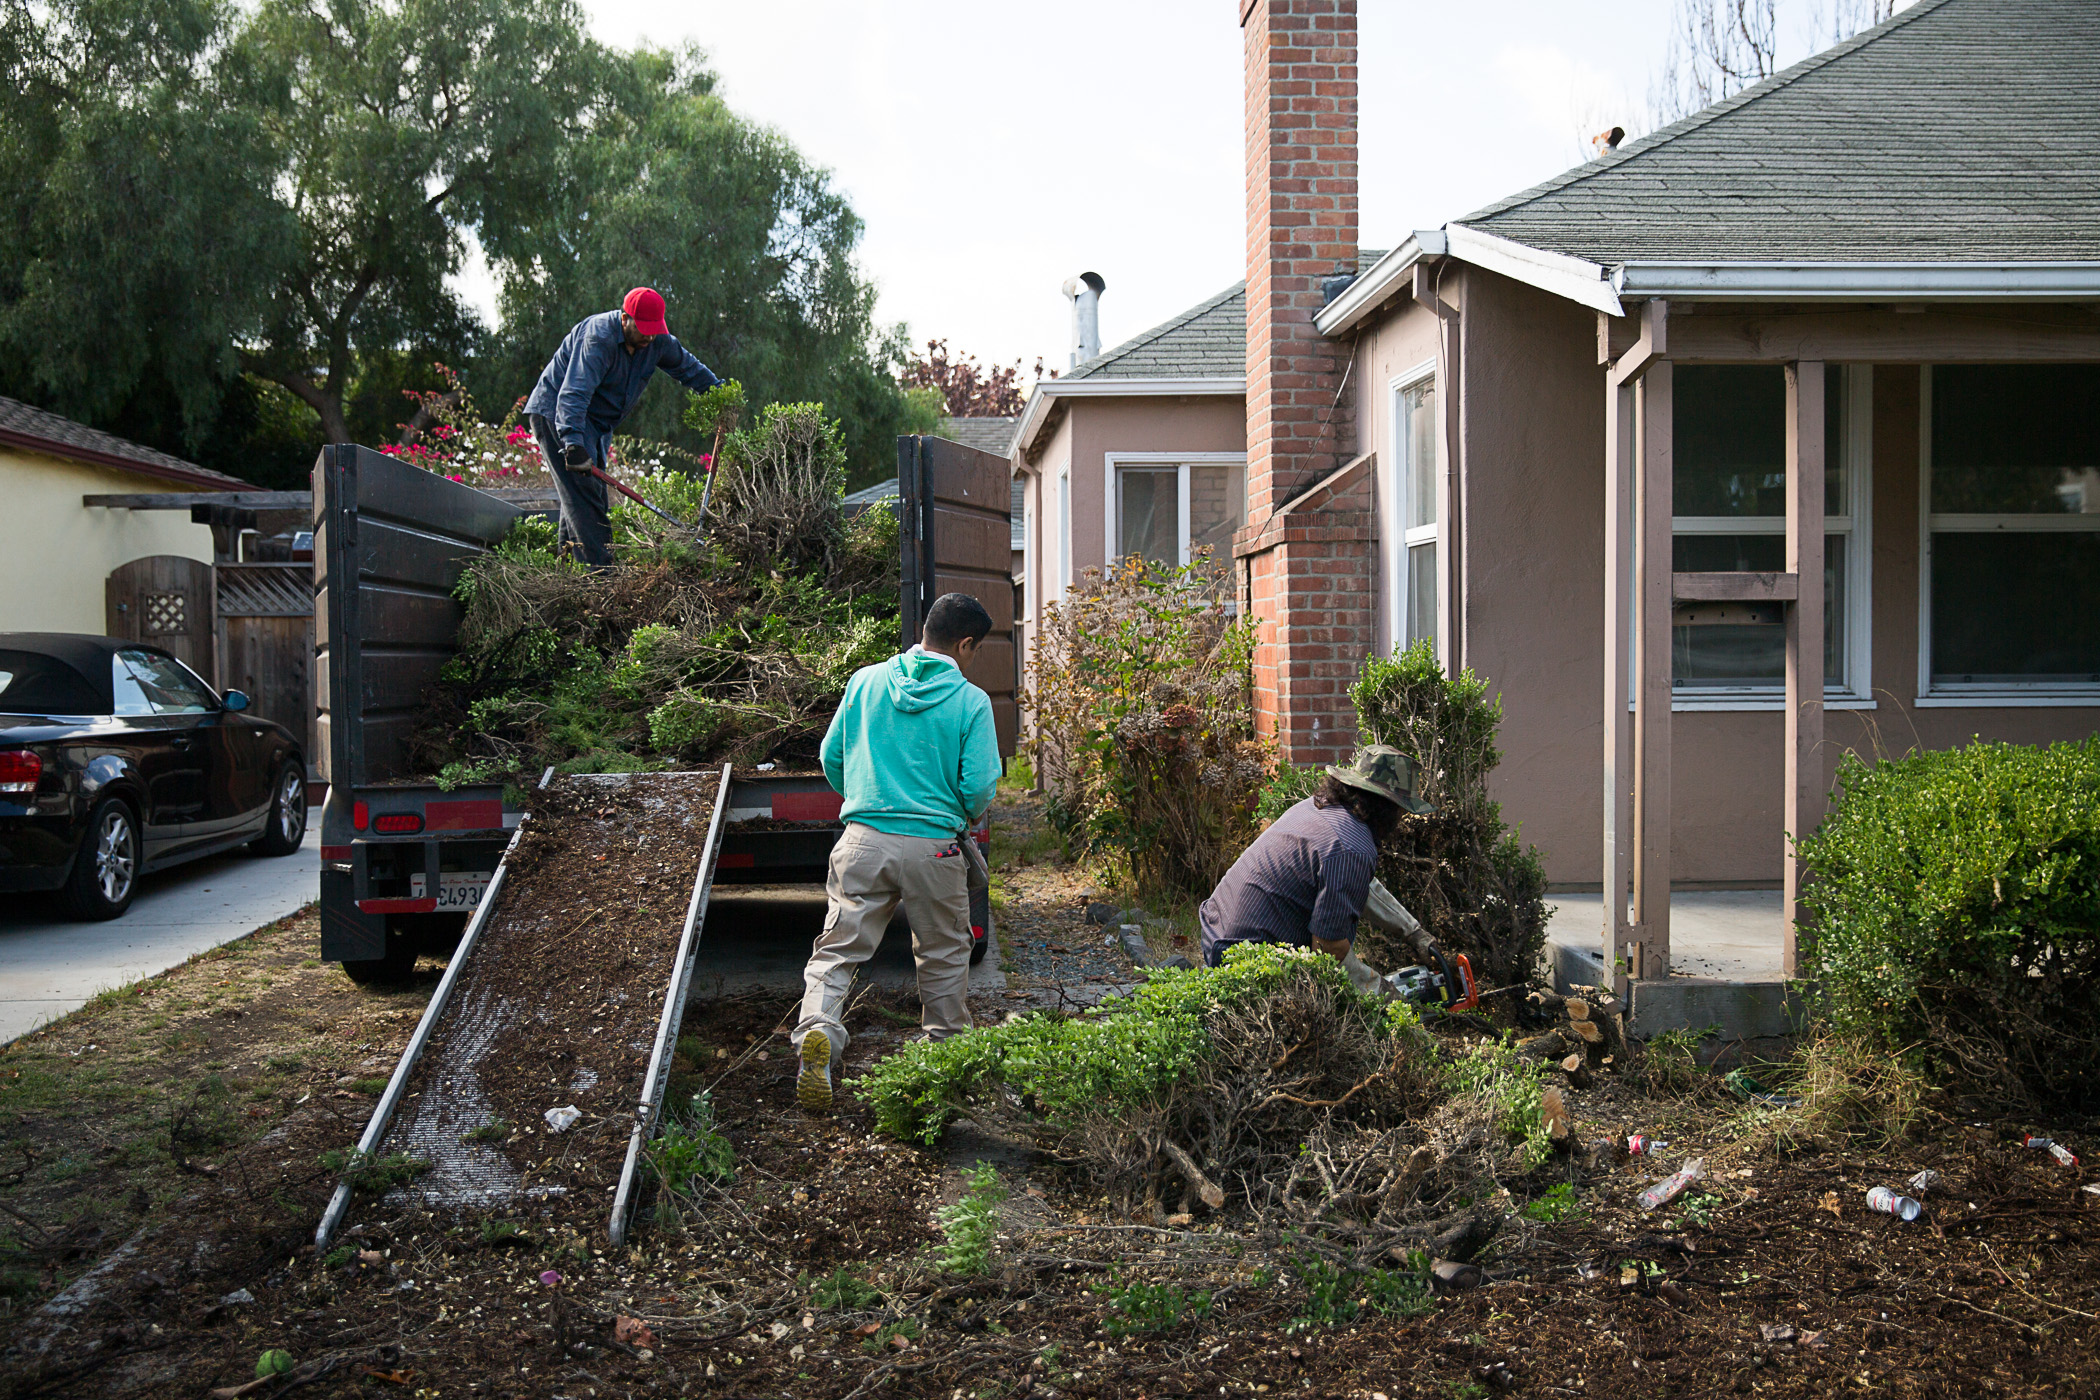 The landscaping crew rids the front yard of unsightly junipers to enhance its curb appeal.